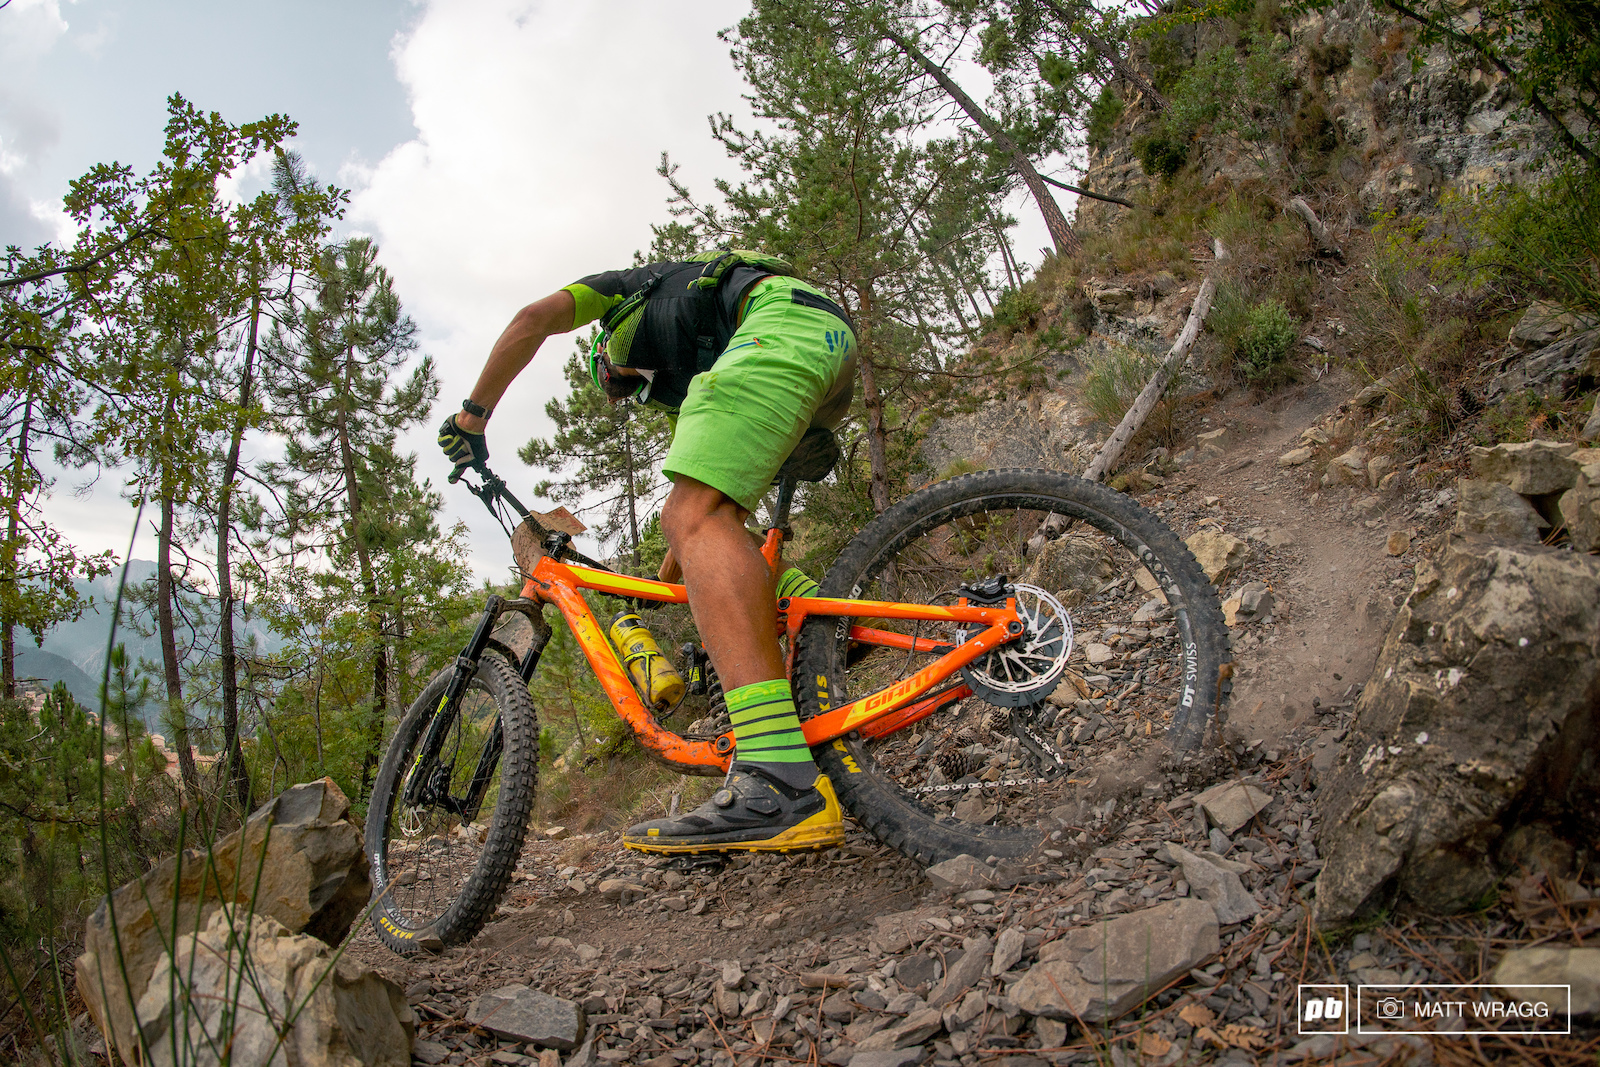 Choose your weapon 27.5 enduro bike with a coil shock...